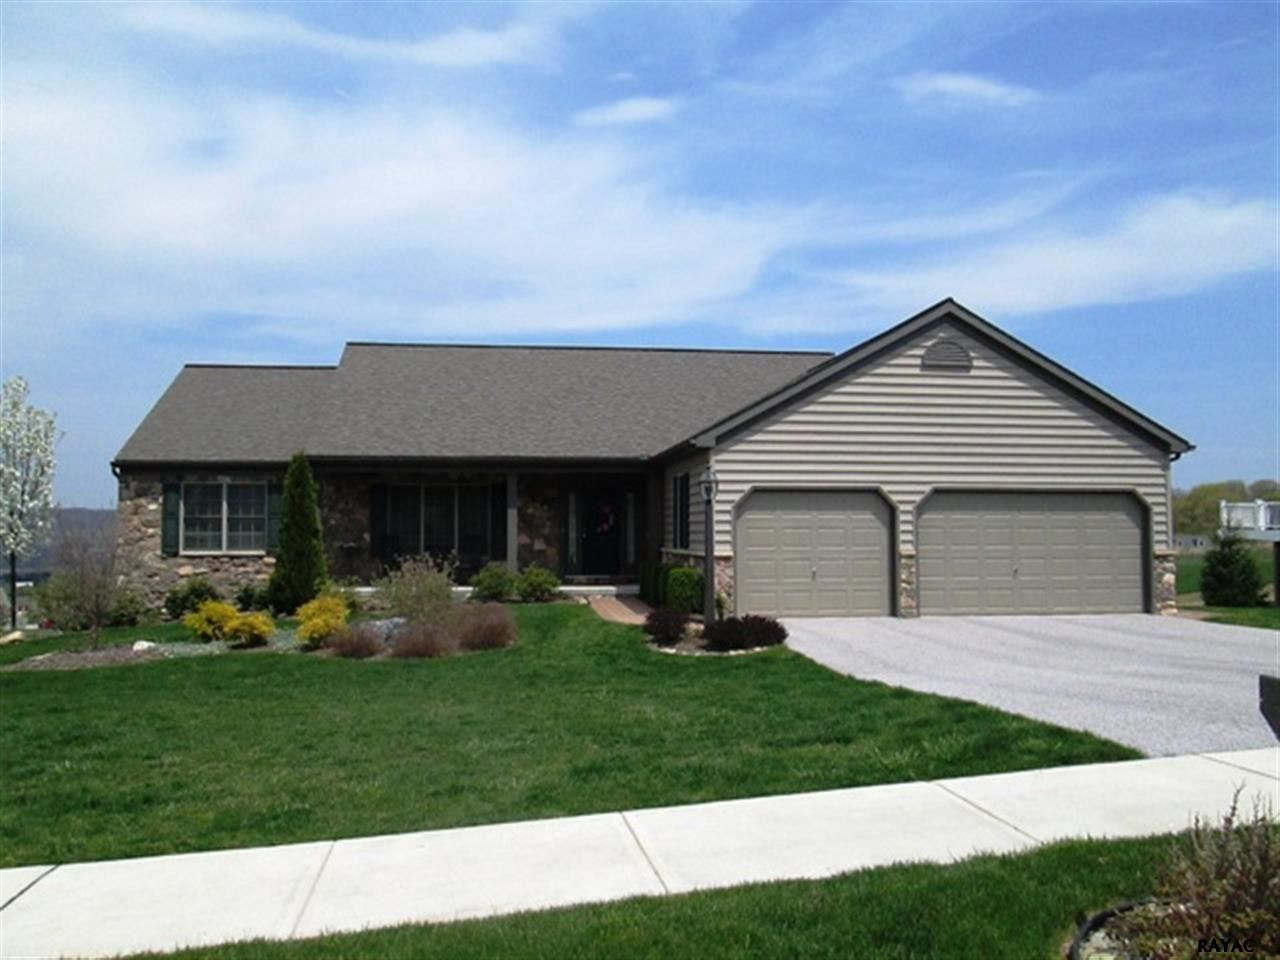 657 Campbell Rd, York, PA 17402